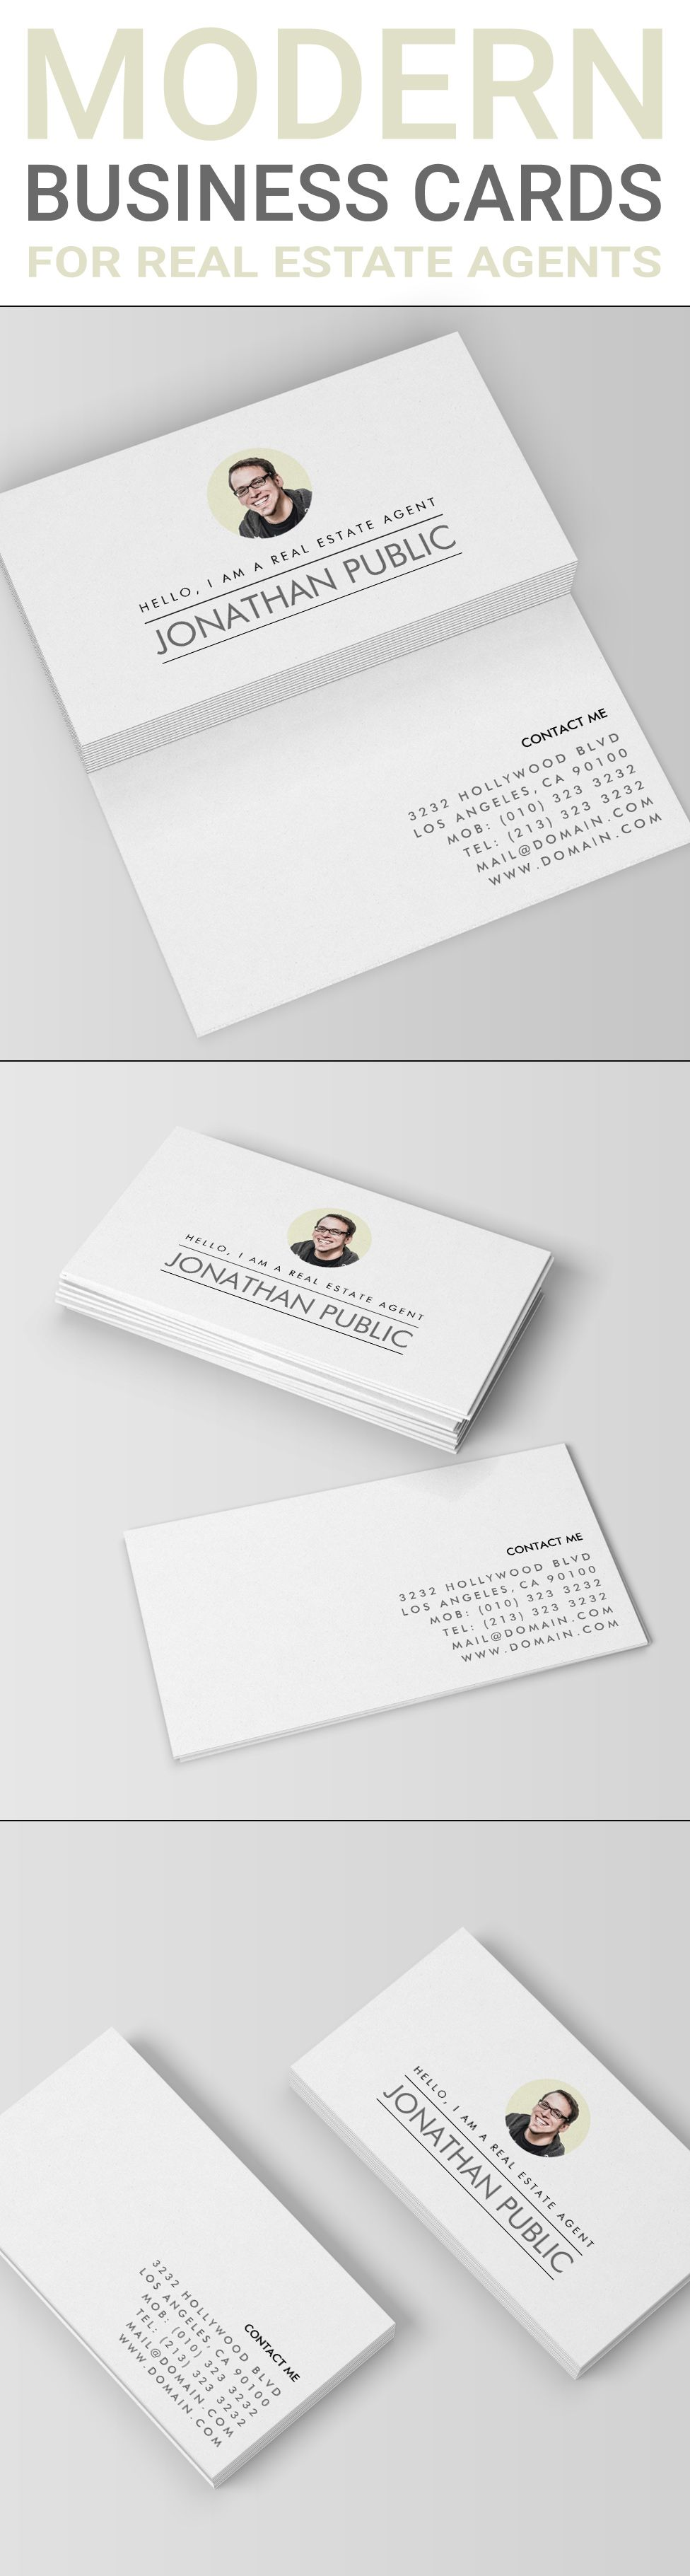 Modern professional real estate business card estate agents modern simplistic business cards design featuring your personal photograph your name and contact details as reheart Gallery